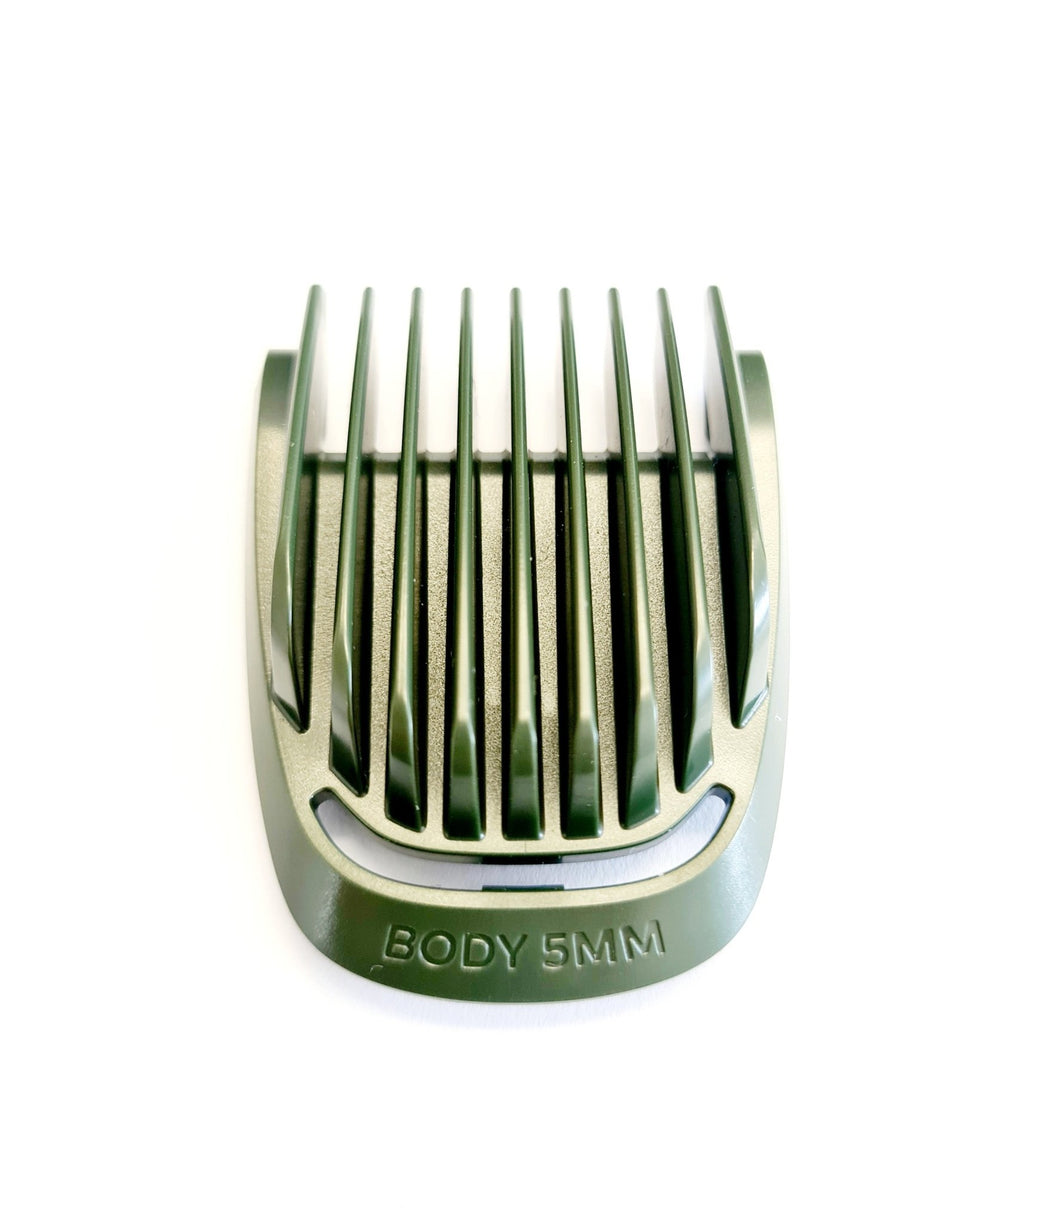 Philips Replacement 5mm Body Comb - Get a Cut NZ